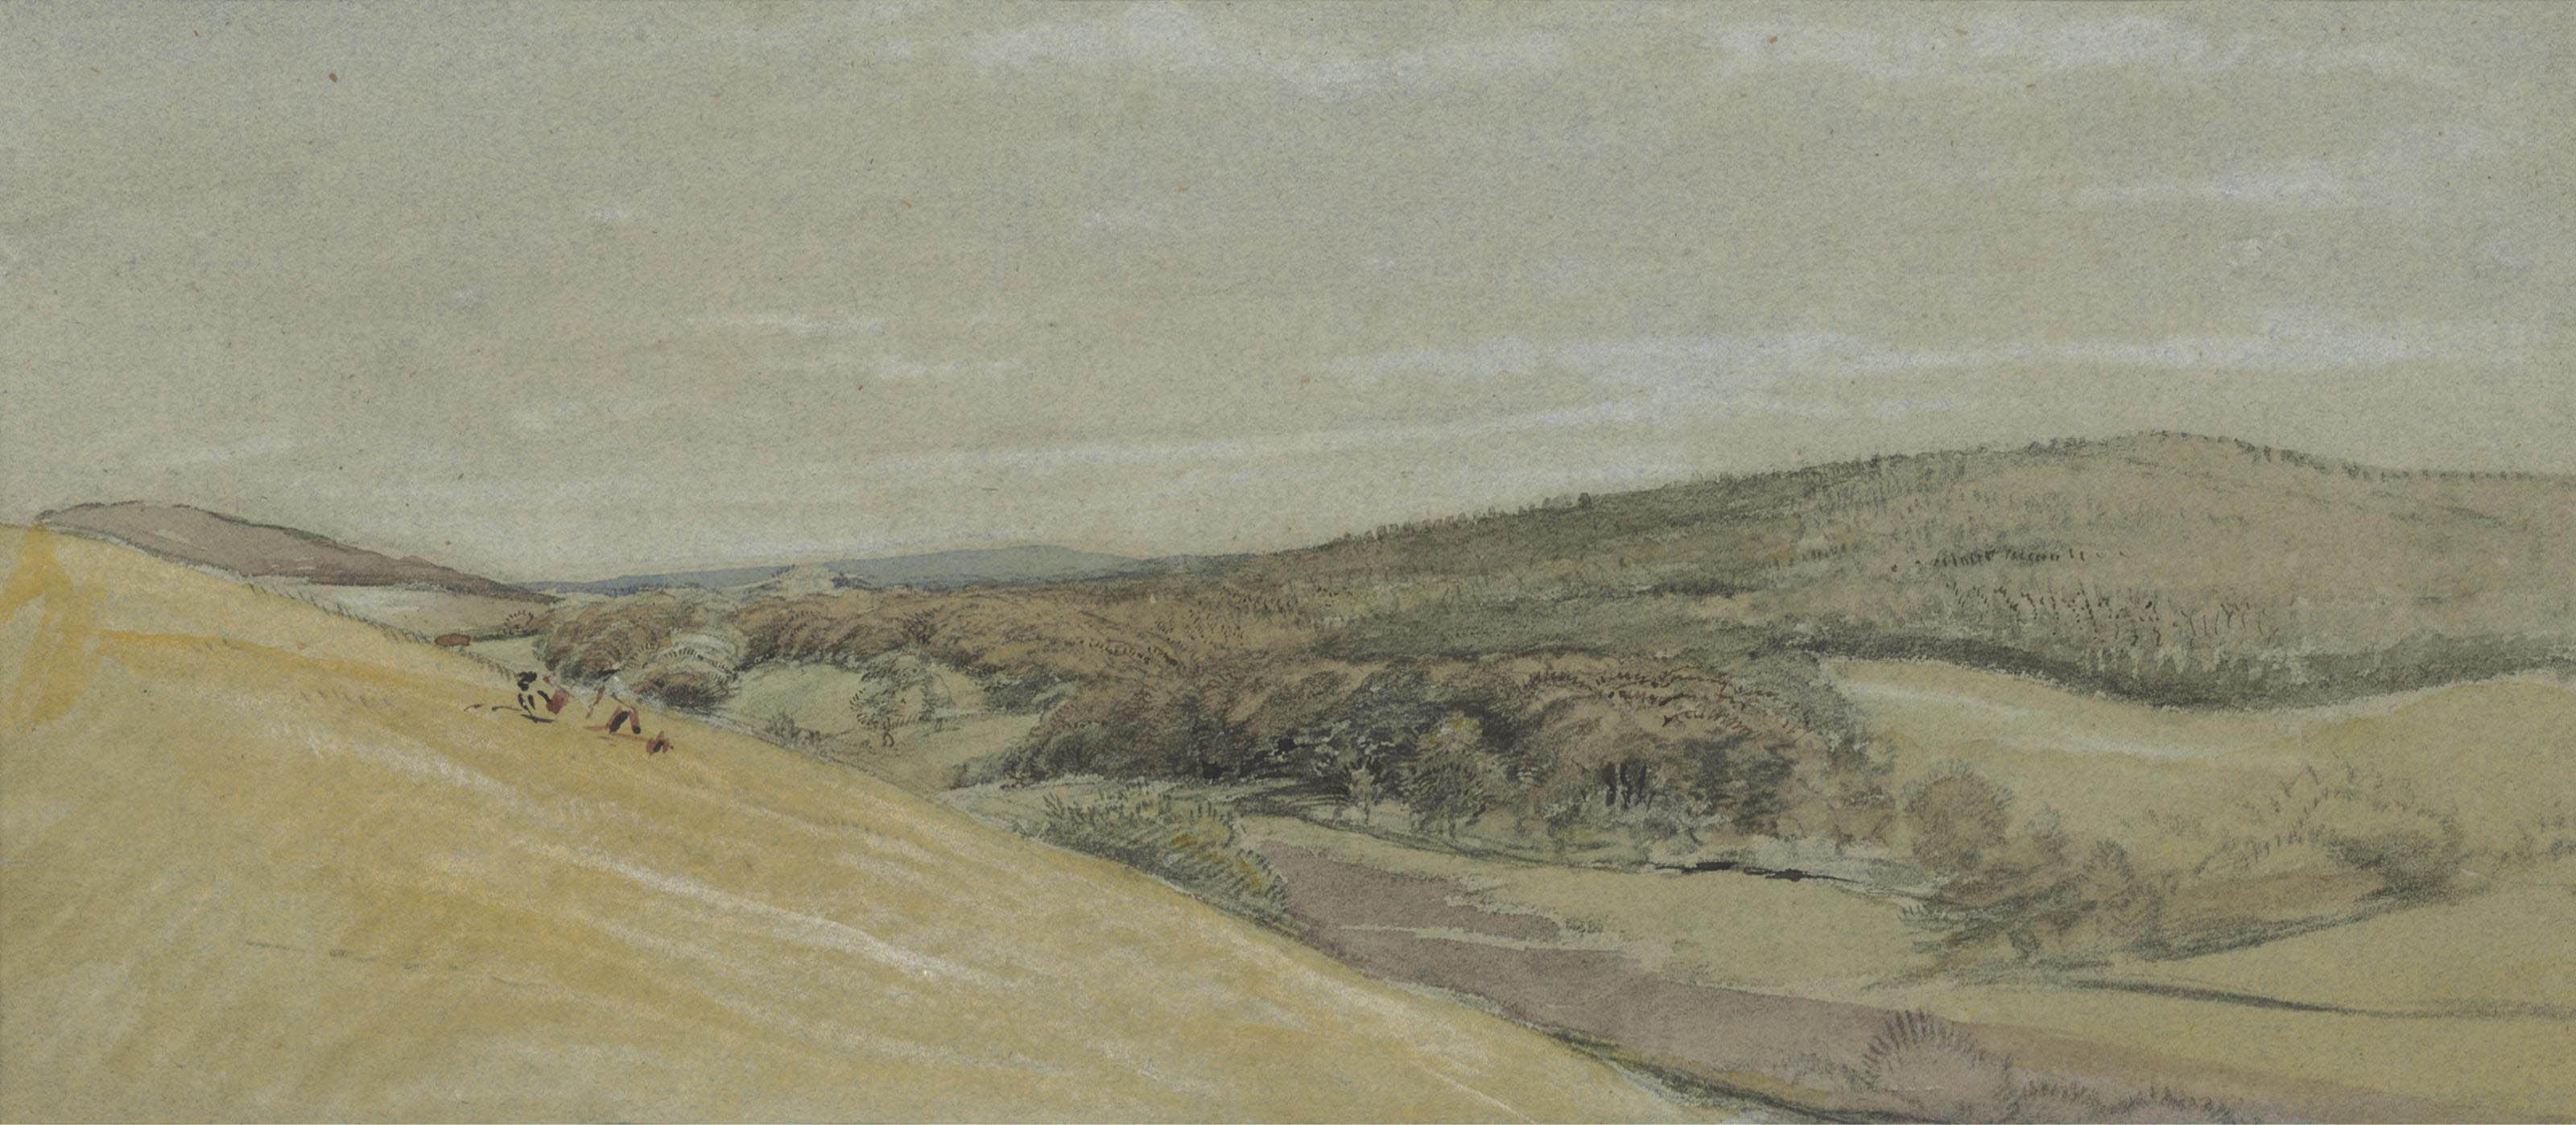 View across a wooded valley